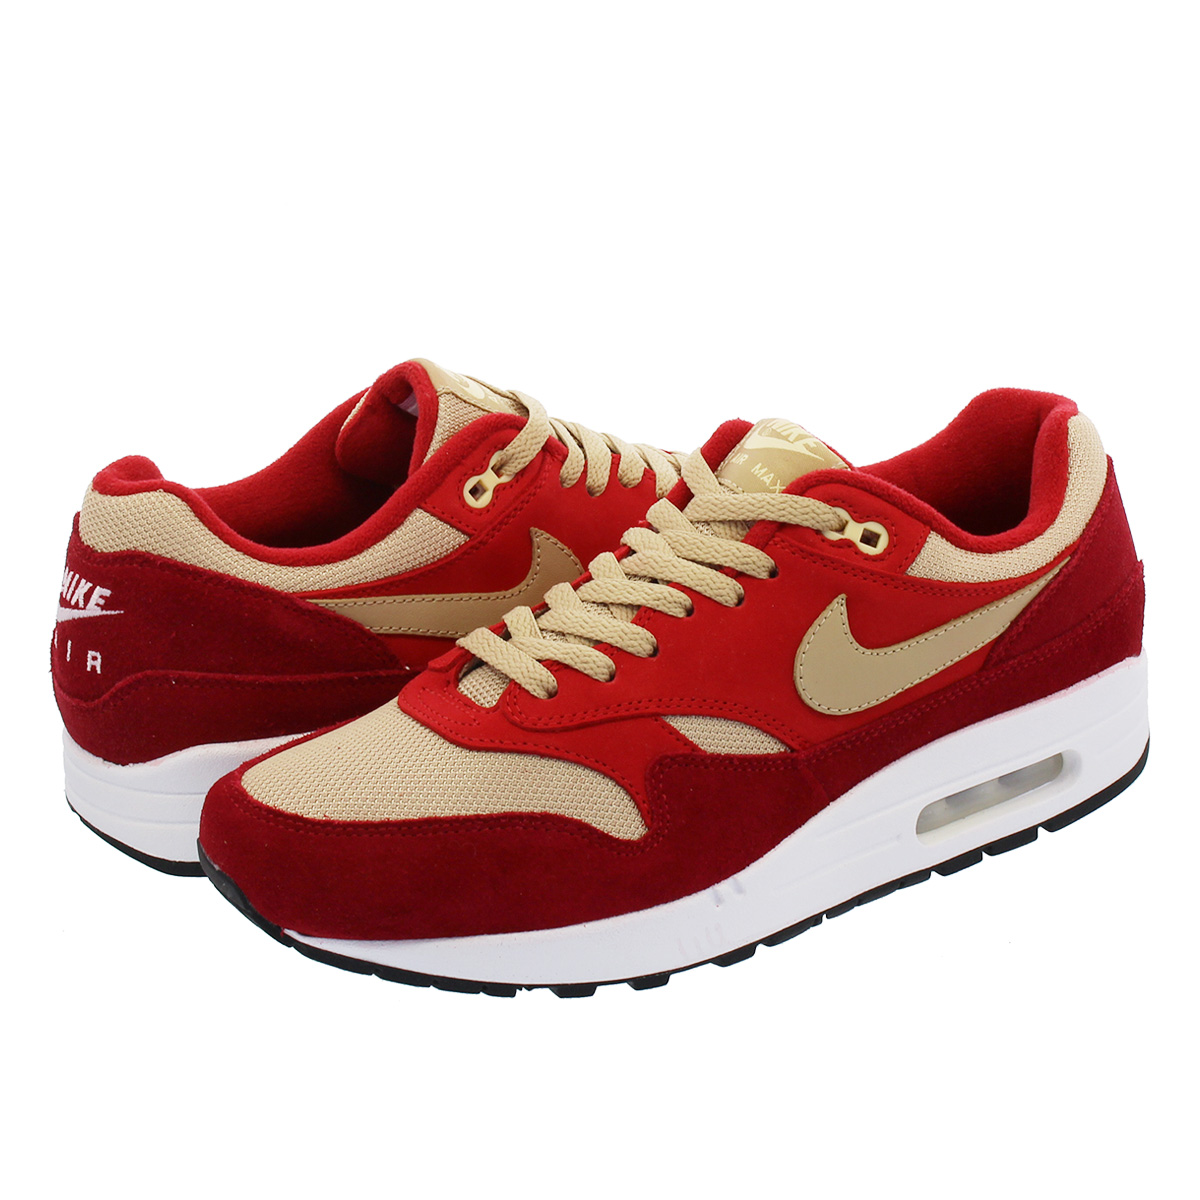 Nike Air Max 1 Premium Men's Shoes Shoes 60items